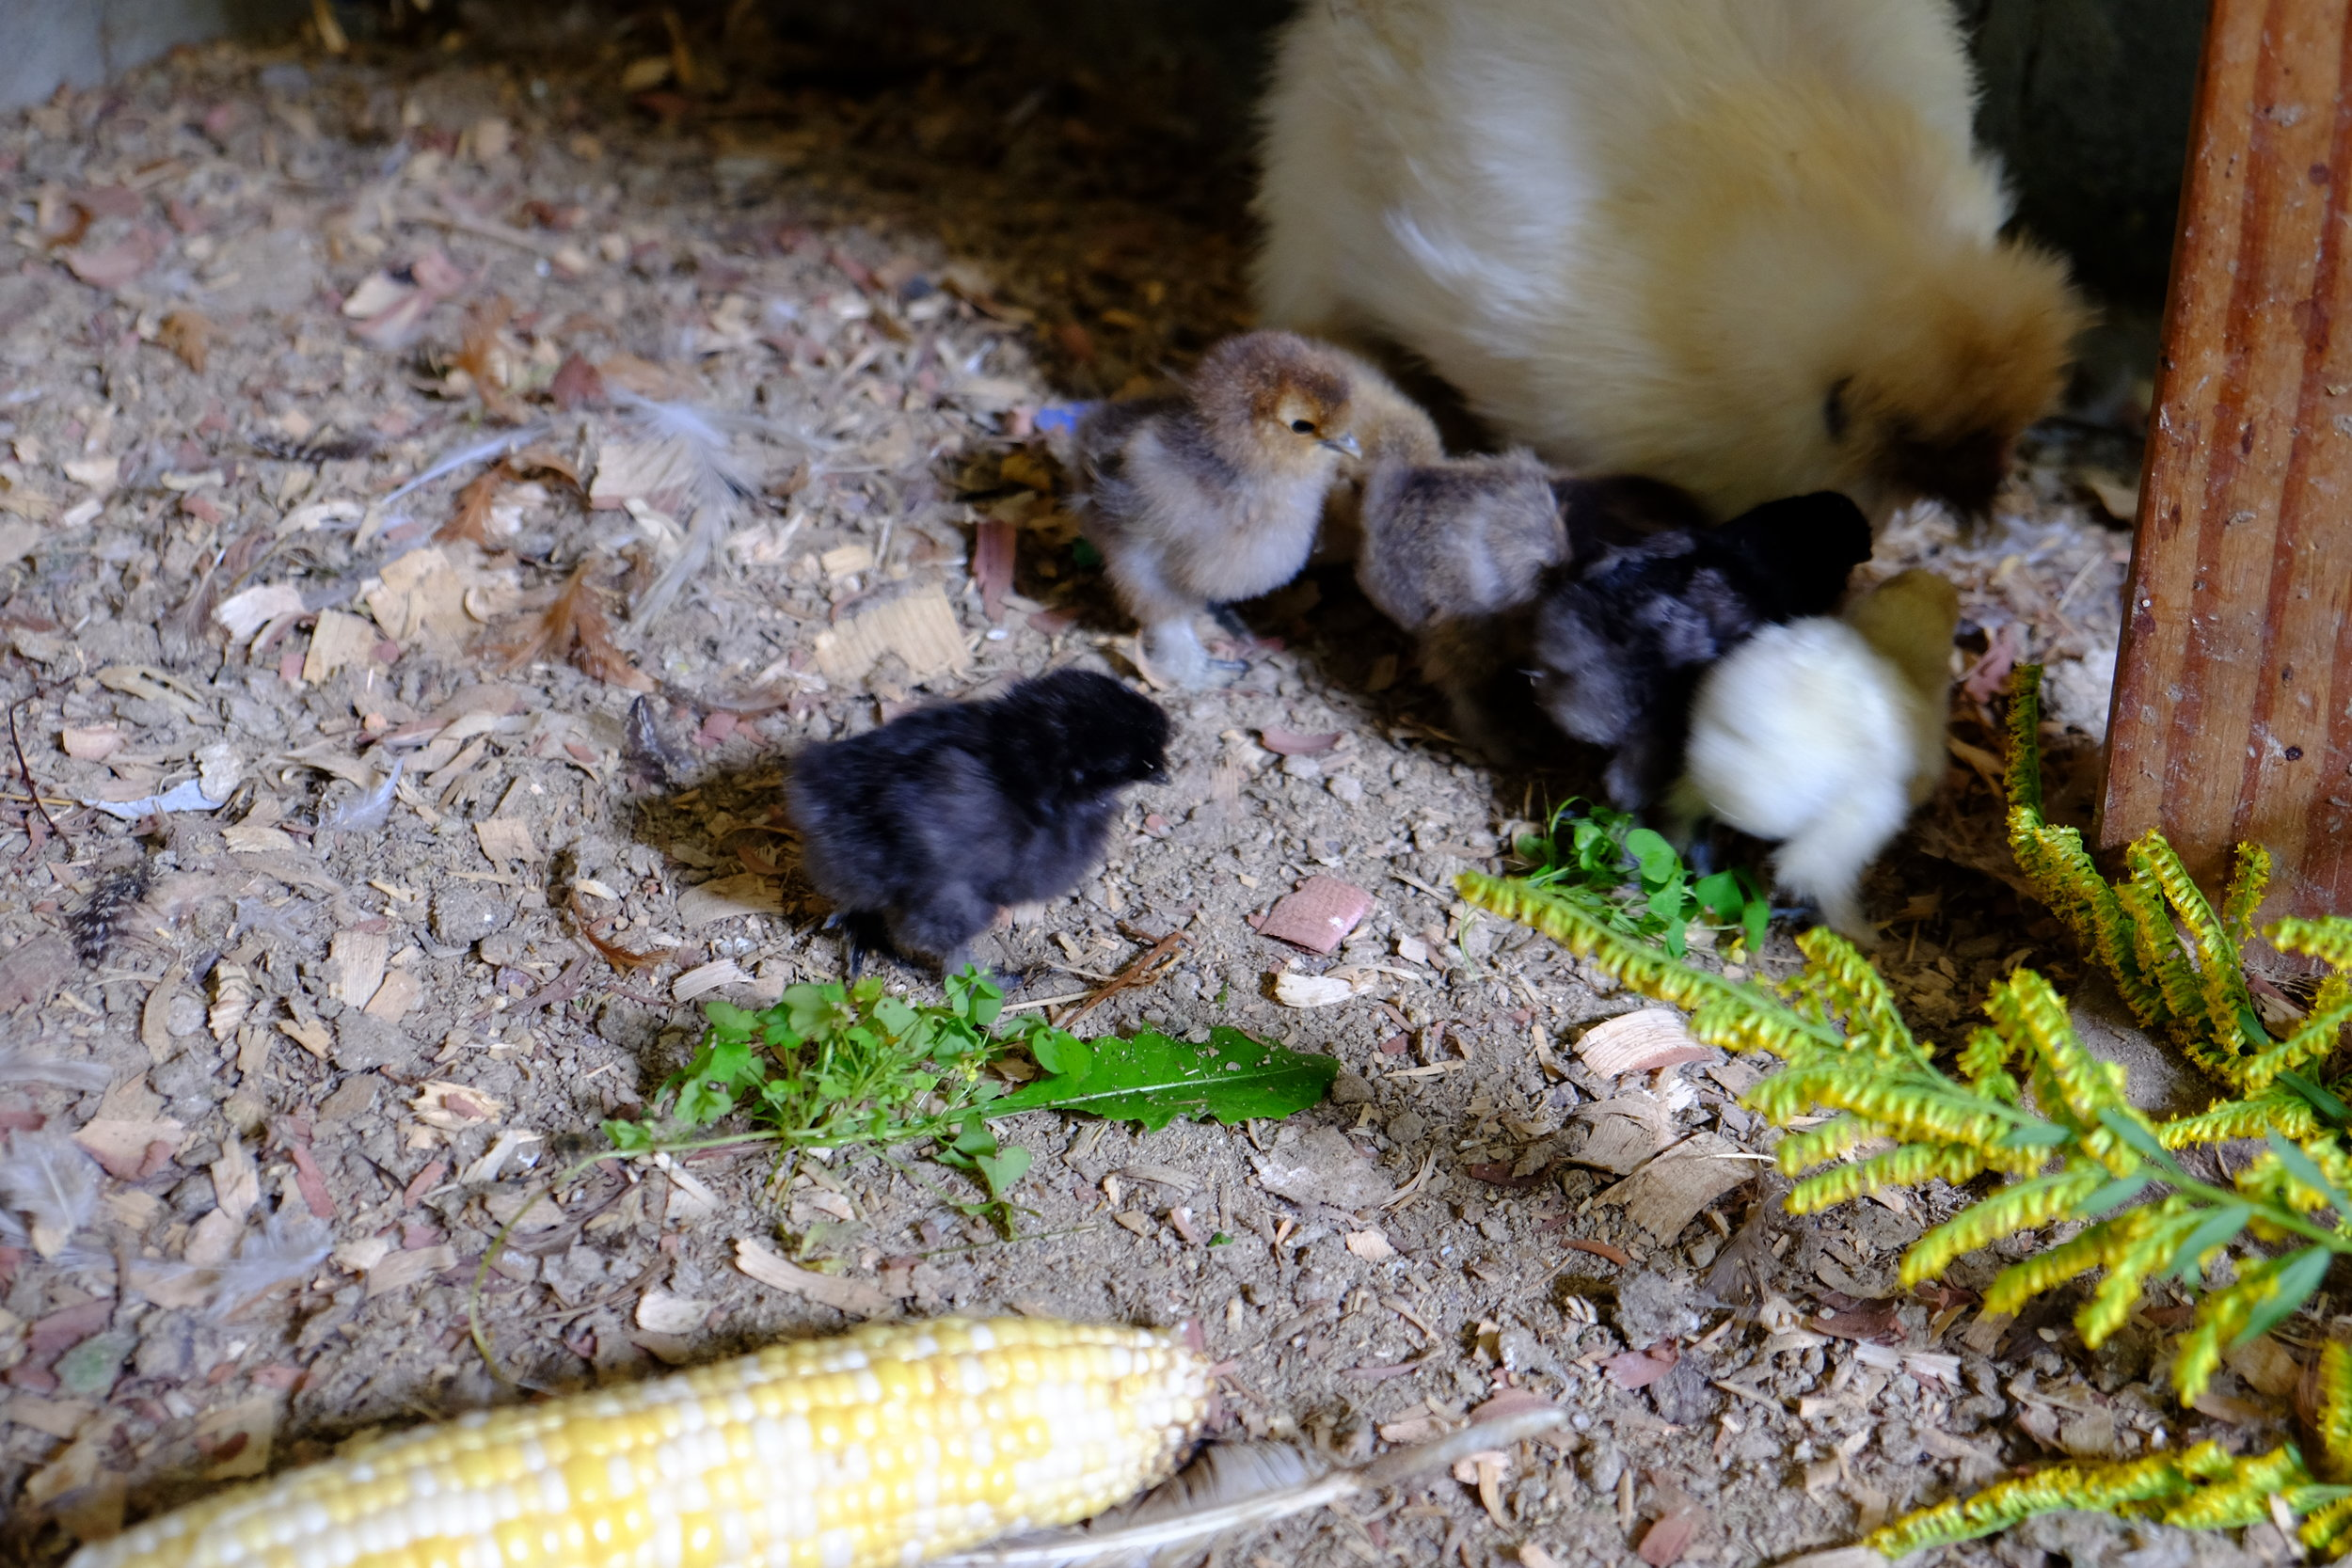 Silkie with chicks